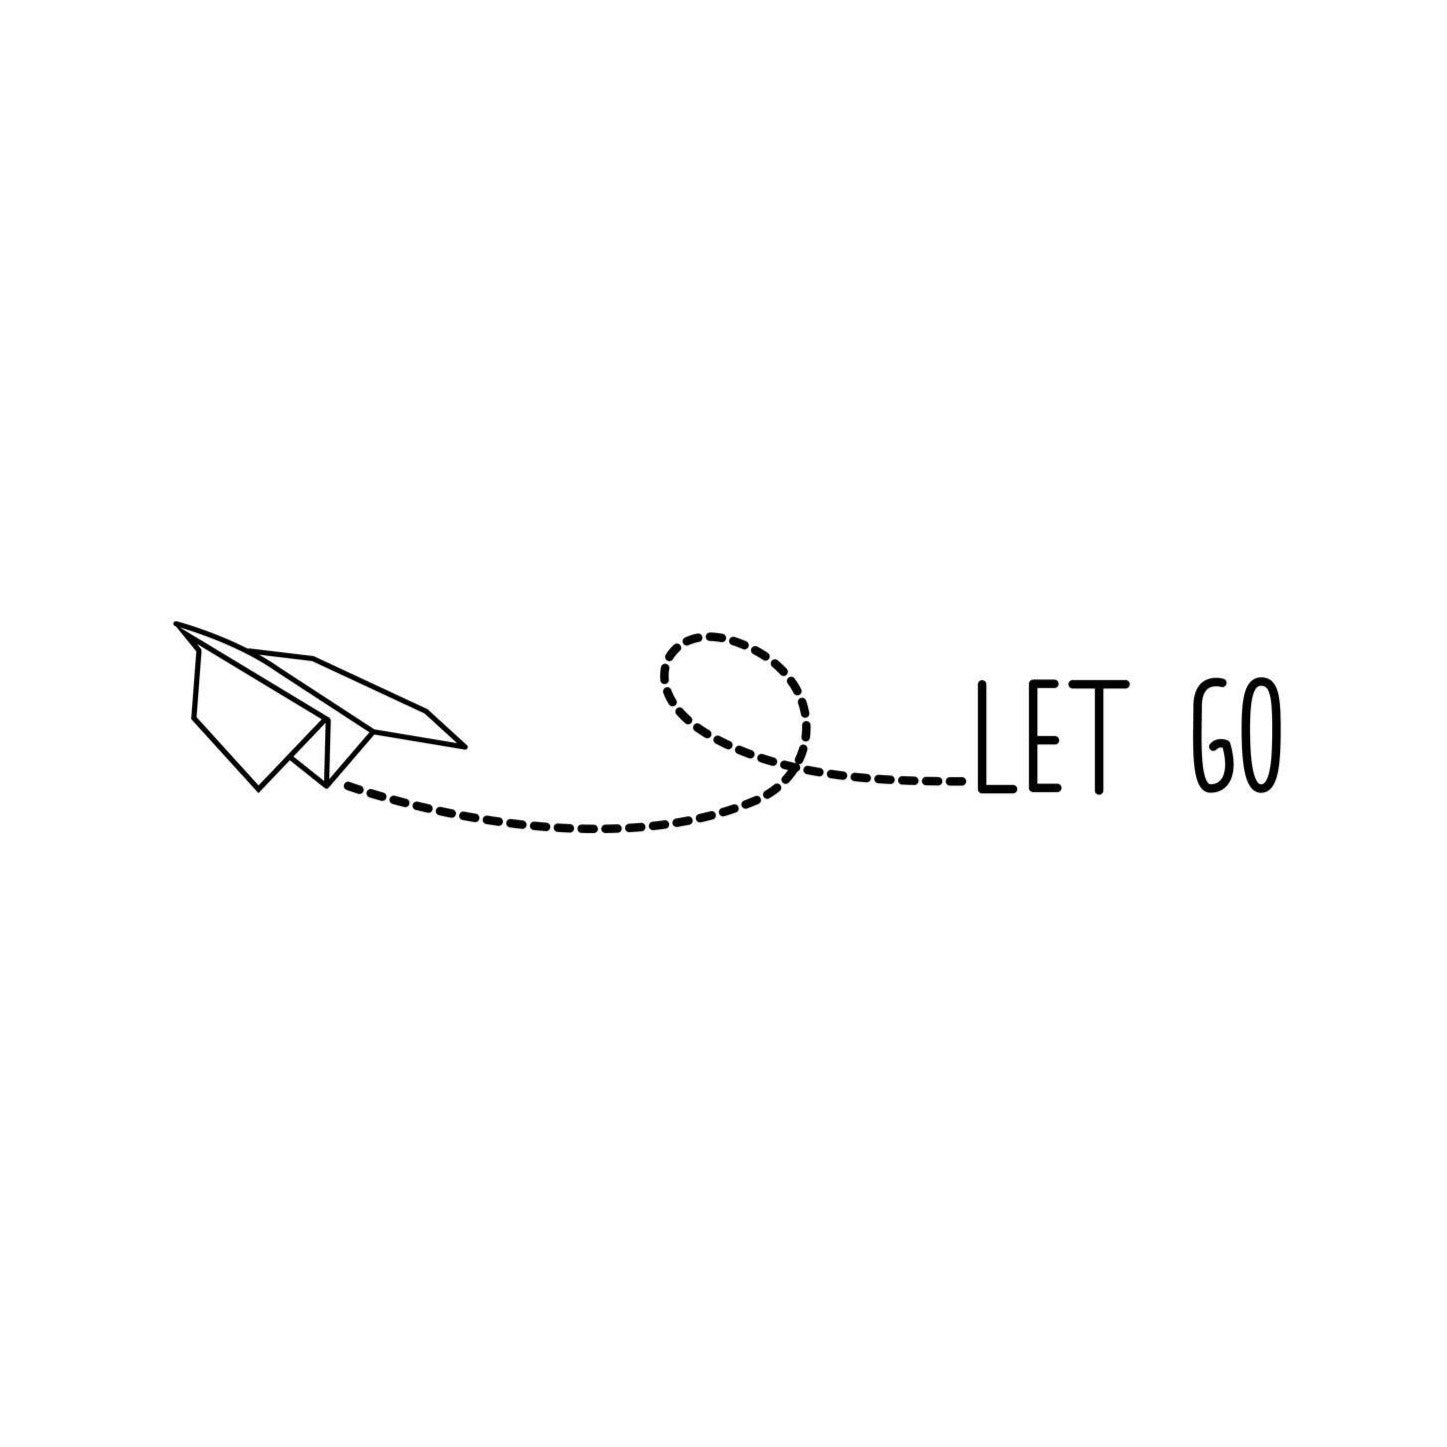 let go let go temporary tattoo momentary ink. Black Bedroom Furniture Sets. Home Design Ideas